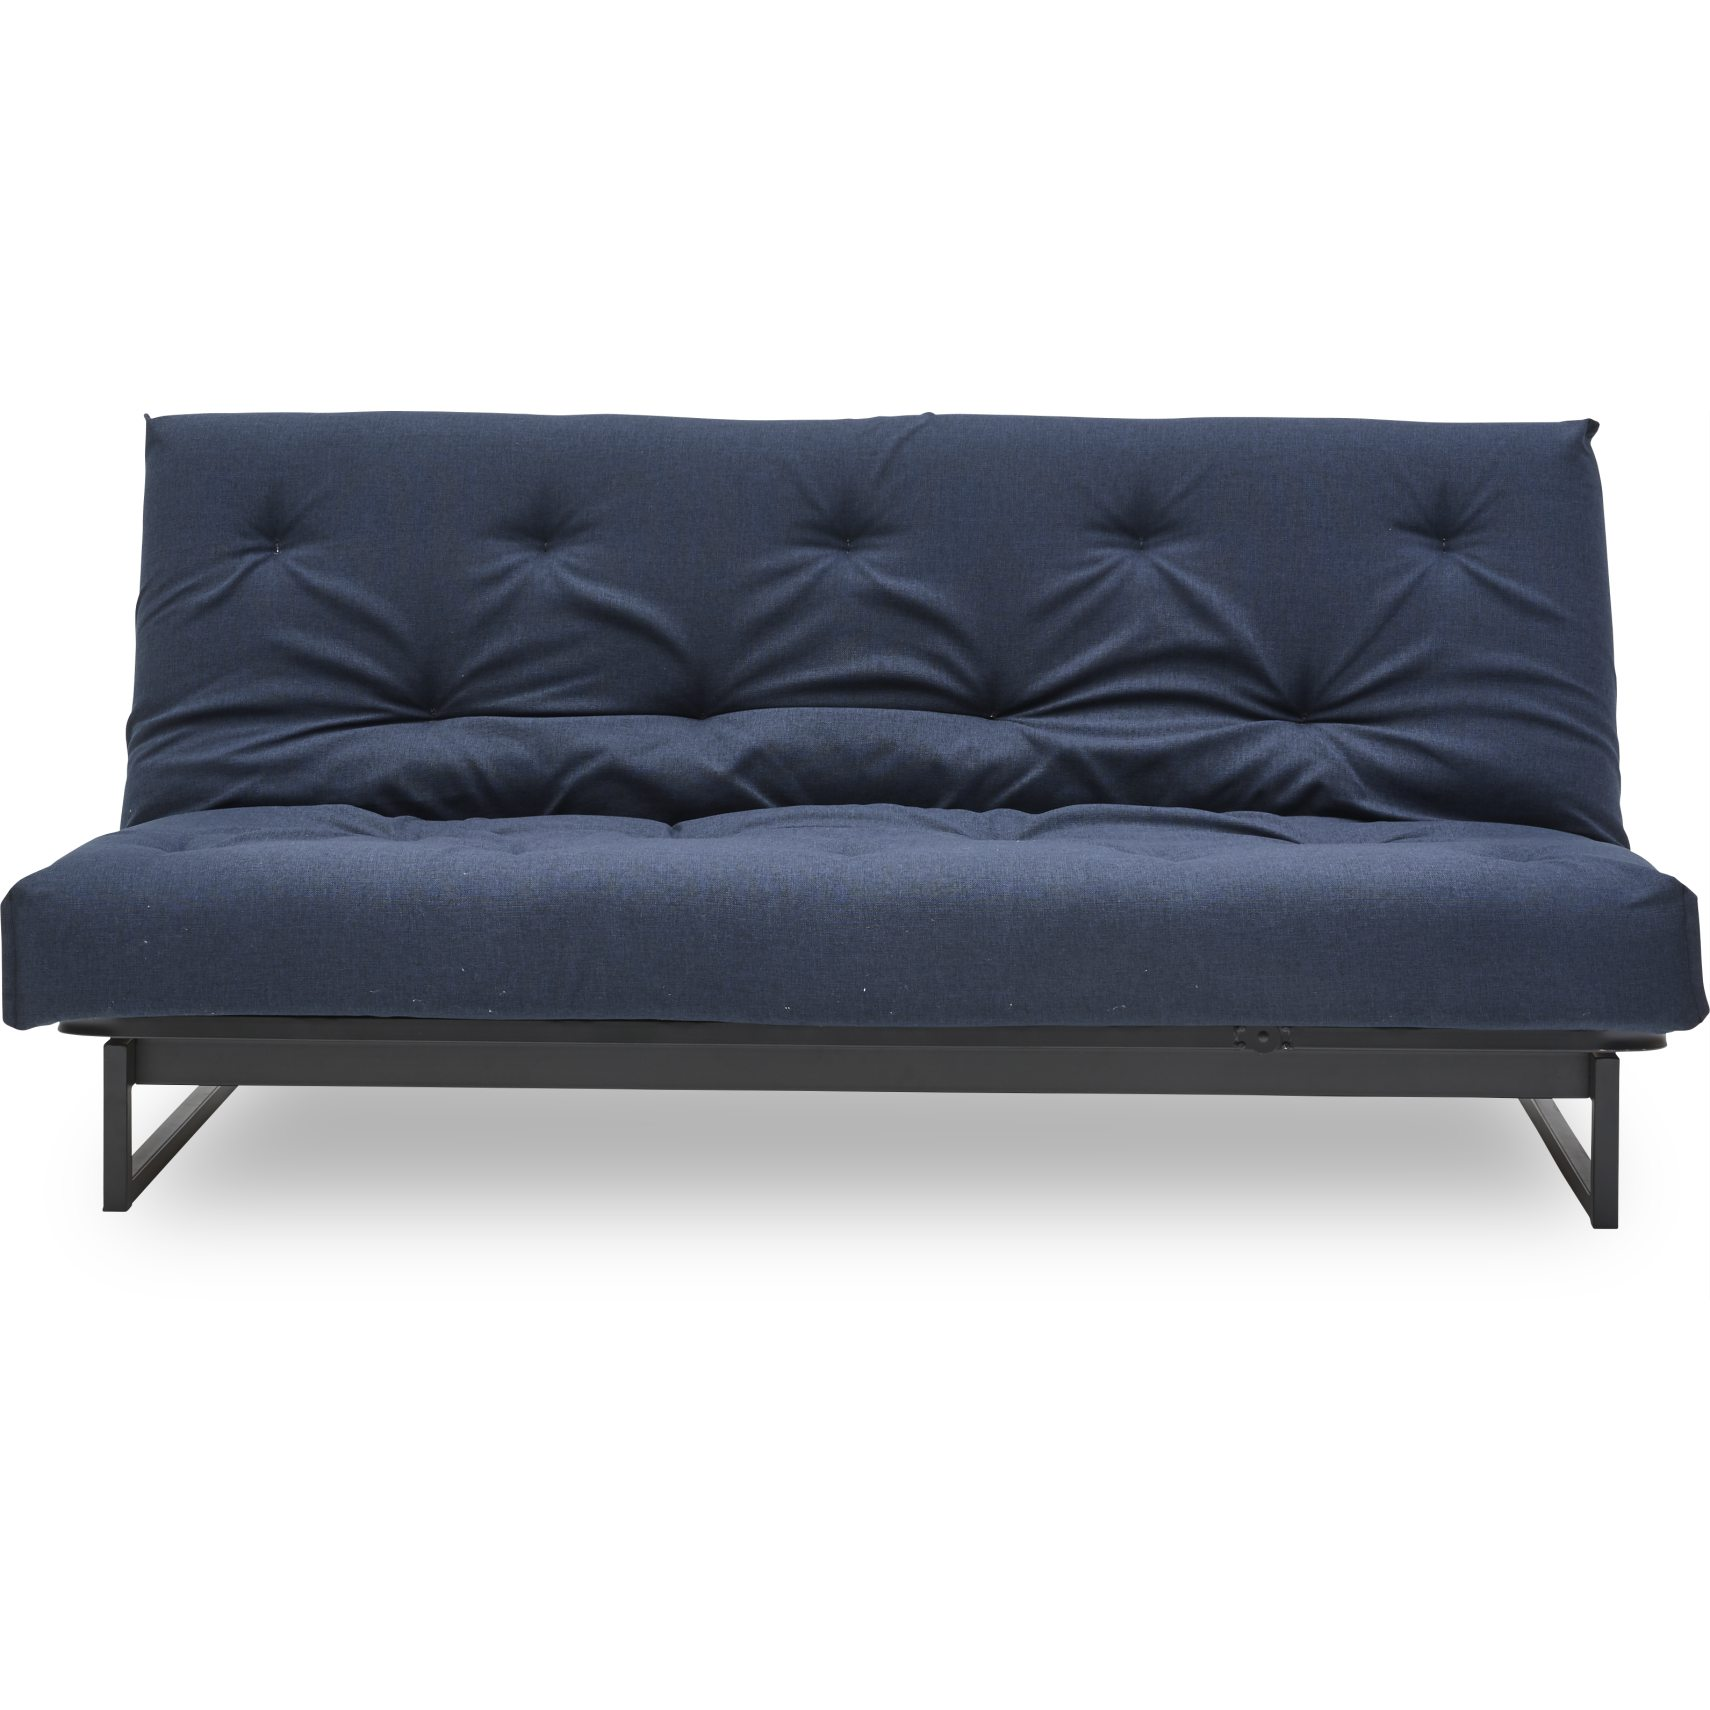 Innovation Living - Fraction Sovesofa - Sovesofa